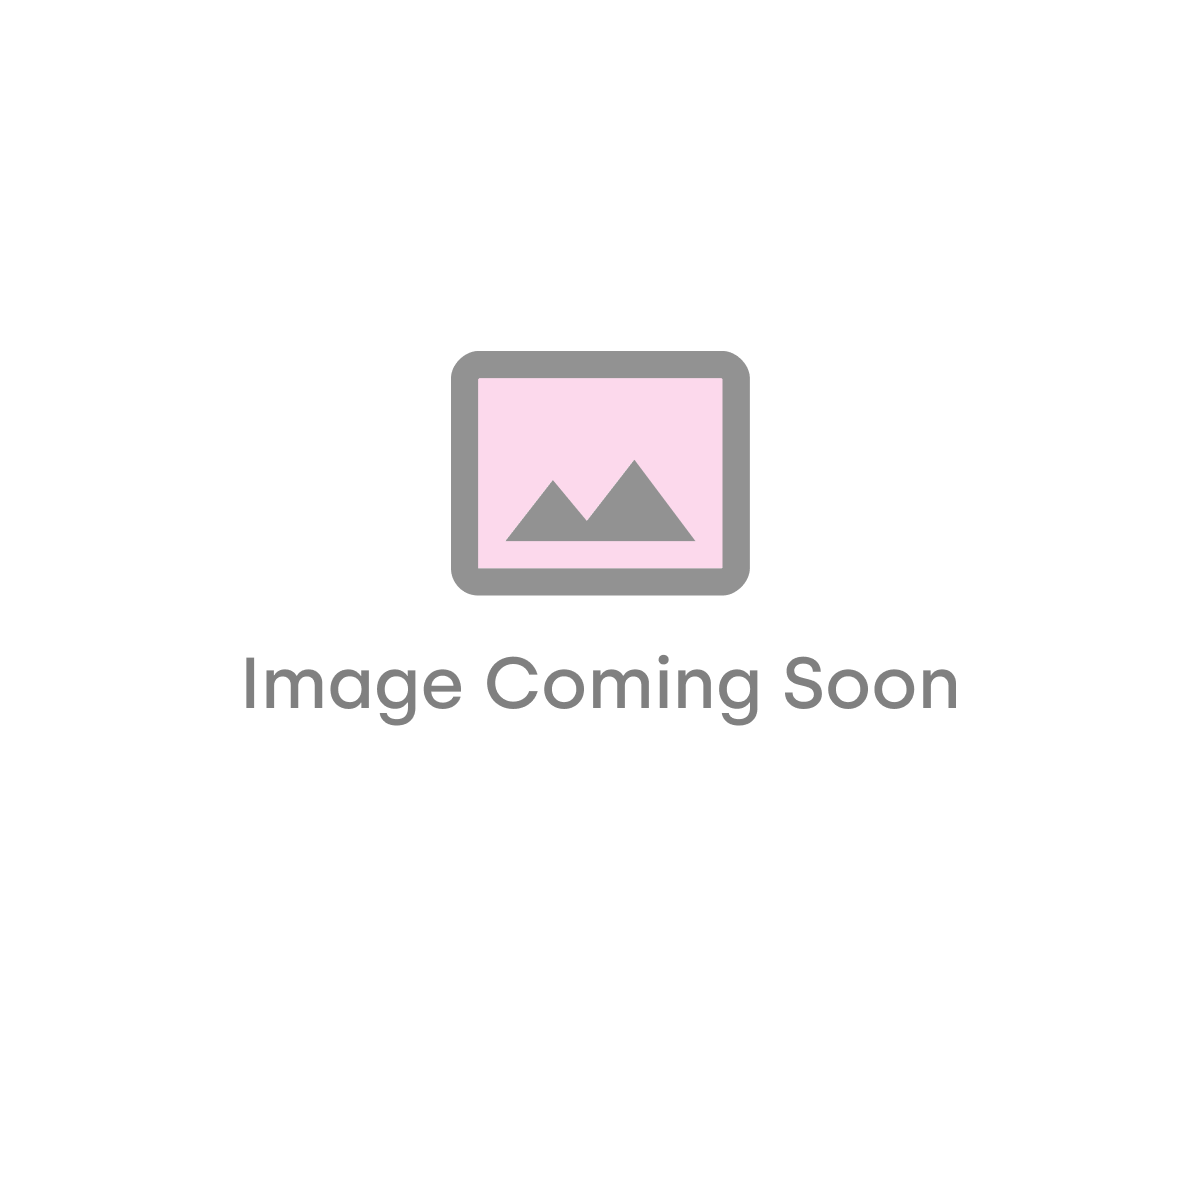 Minuto 400mm Wall Mounted Cloakroom Vanity Unit & Basin - Brown Grey Avola (19251)